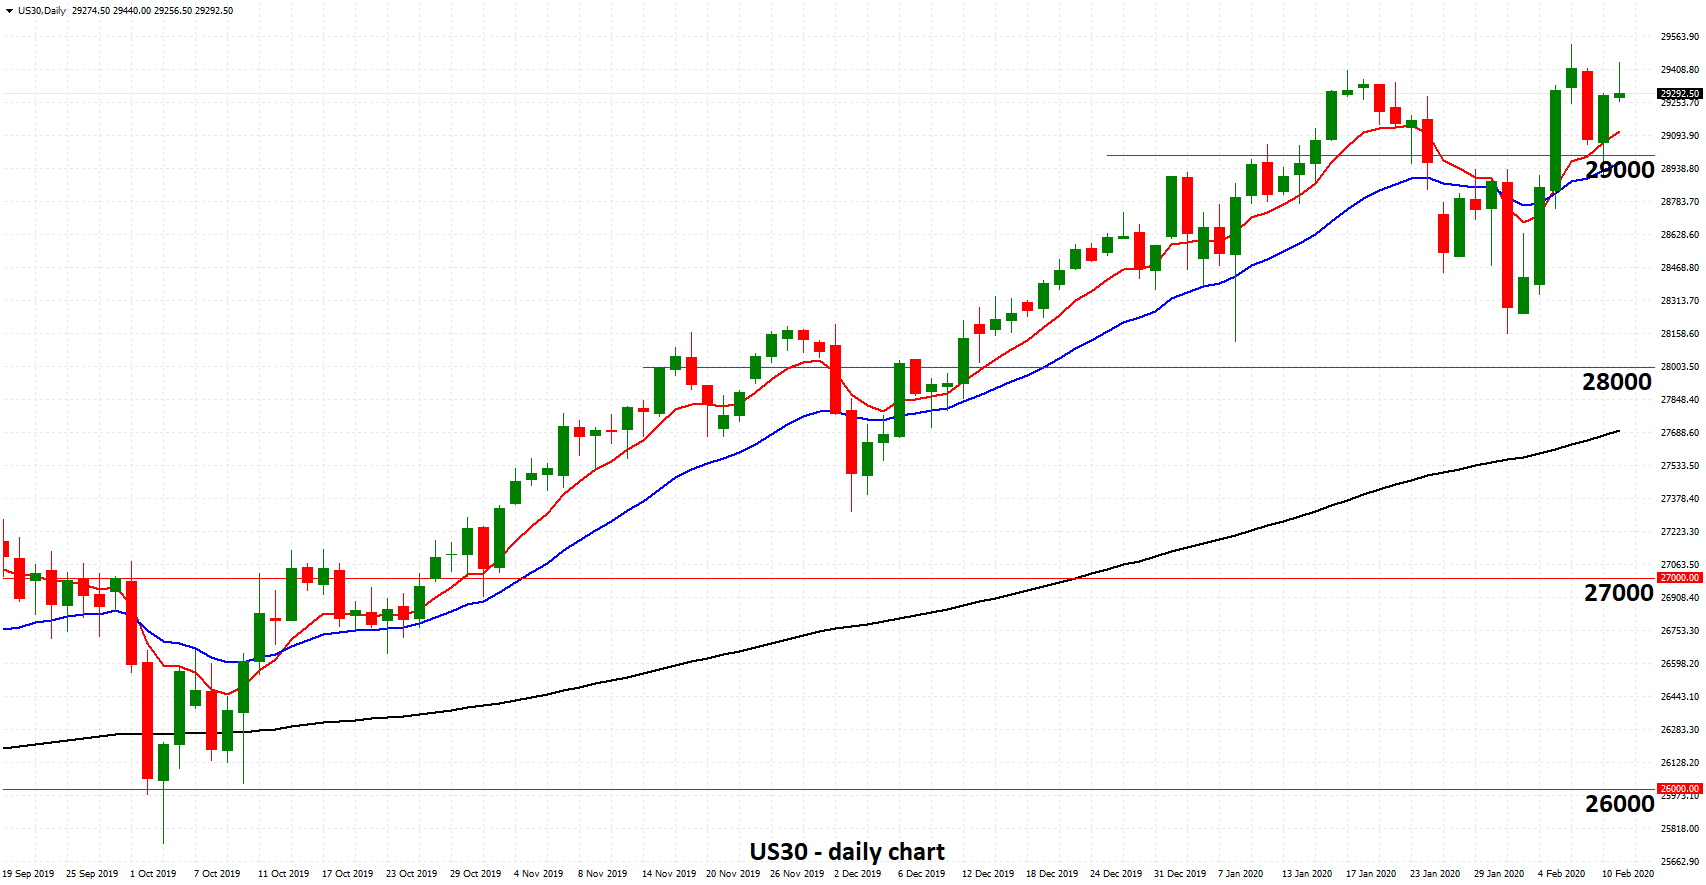 US30 - Remains Near All Time Highs above 29000 as Markets Defy Virus Risk